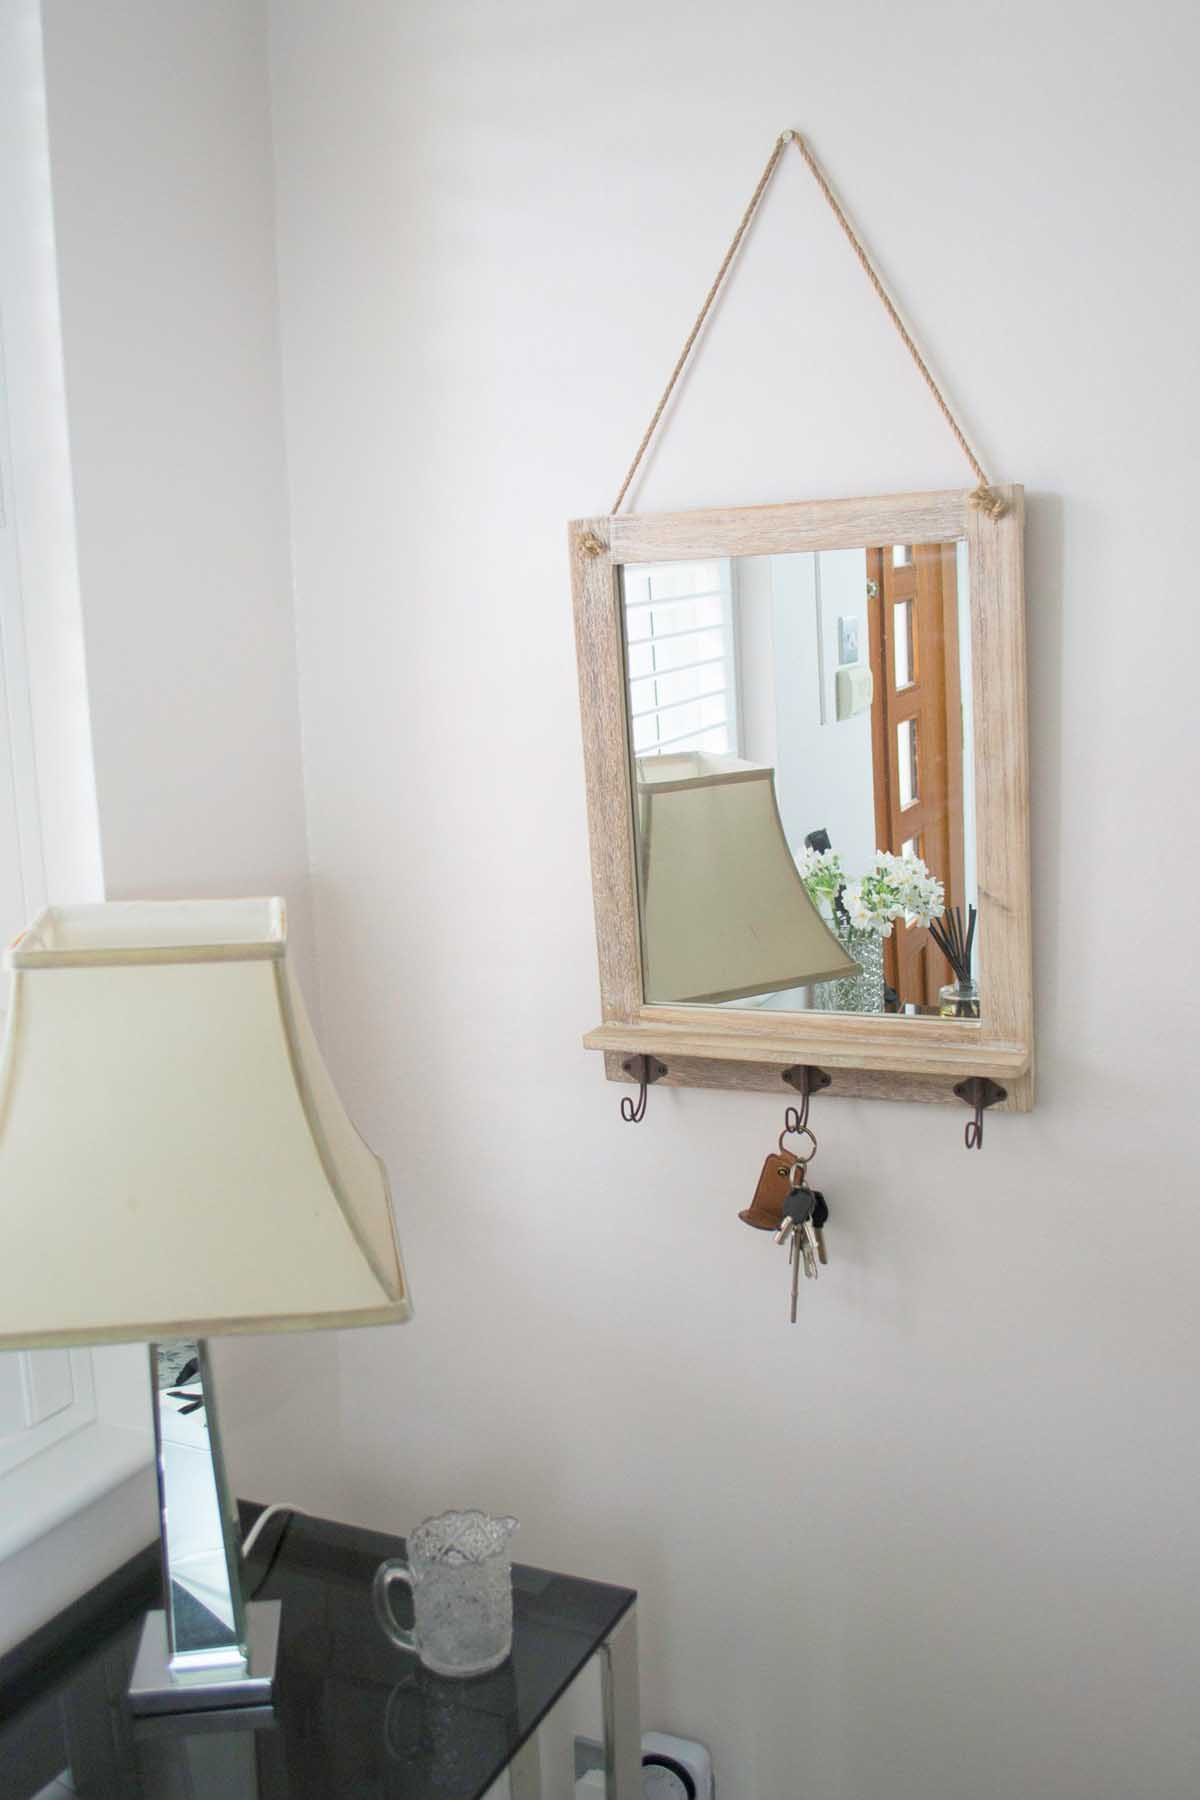 Rustic Whitewash Wooden Wall Mounted Hanging Mirror With 3 ...